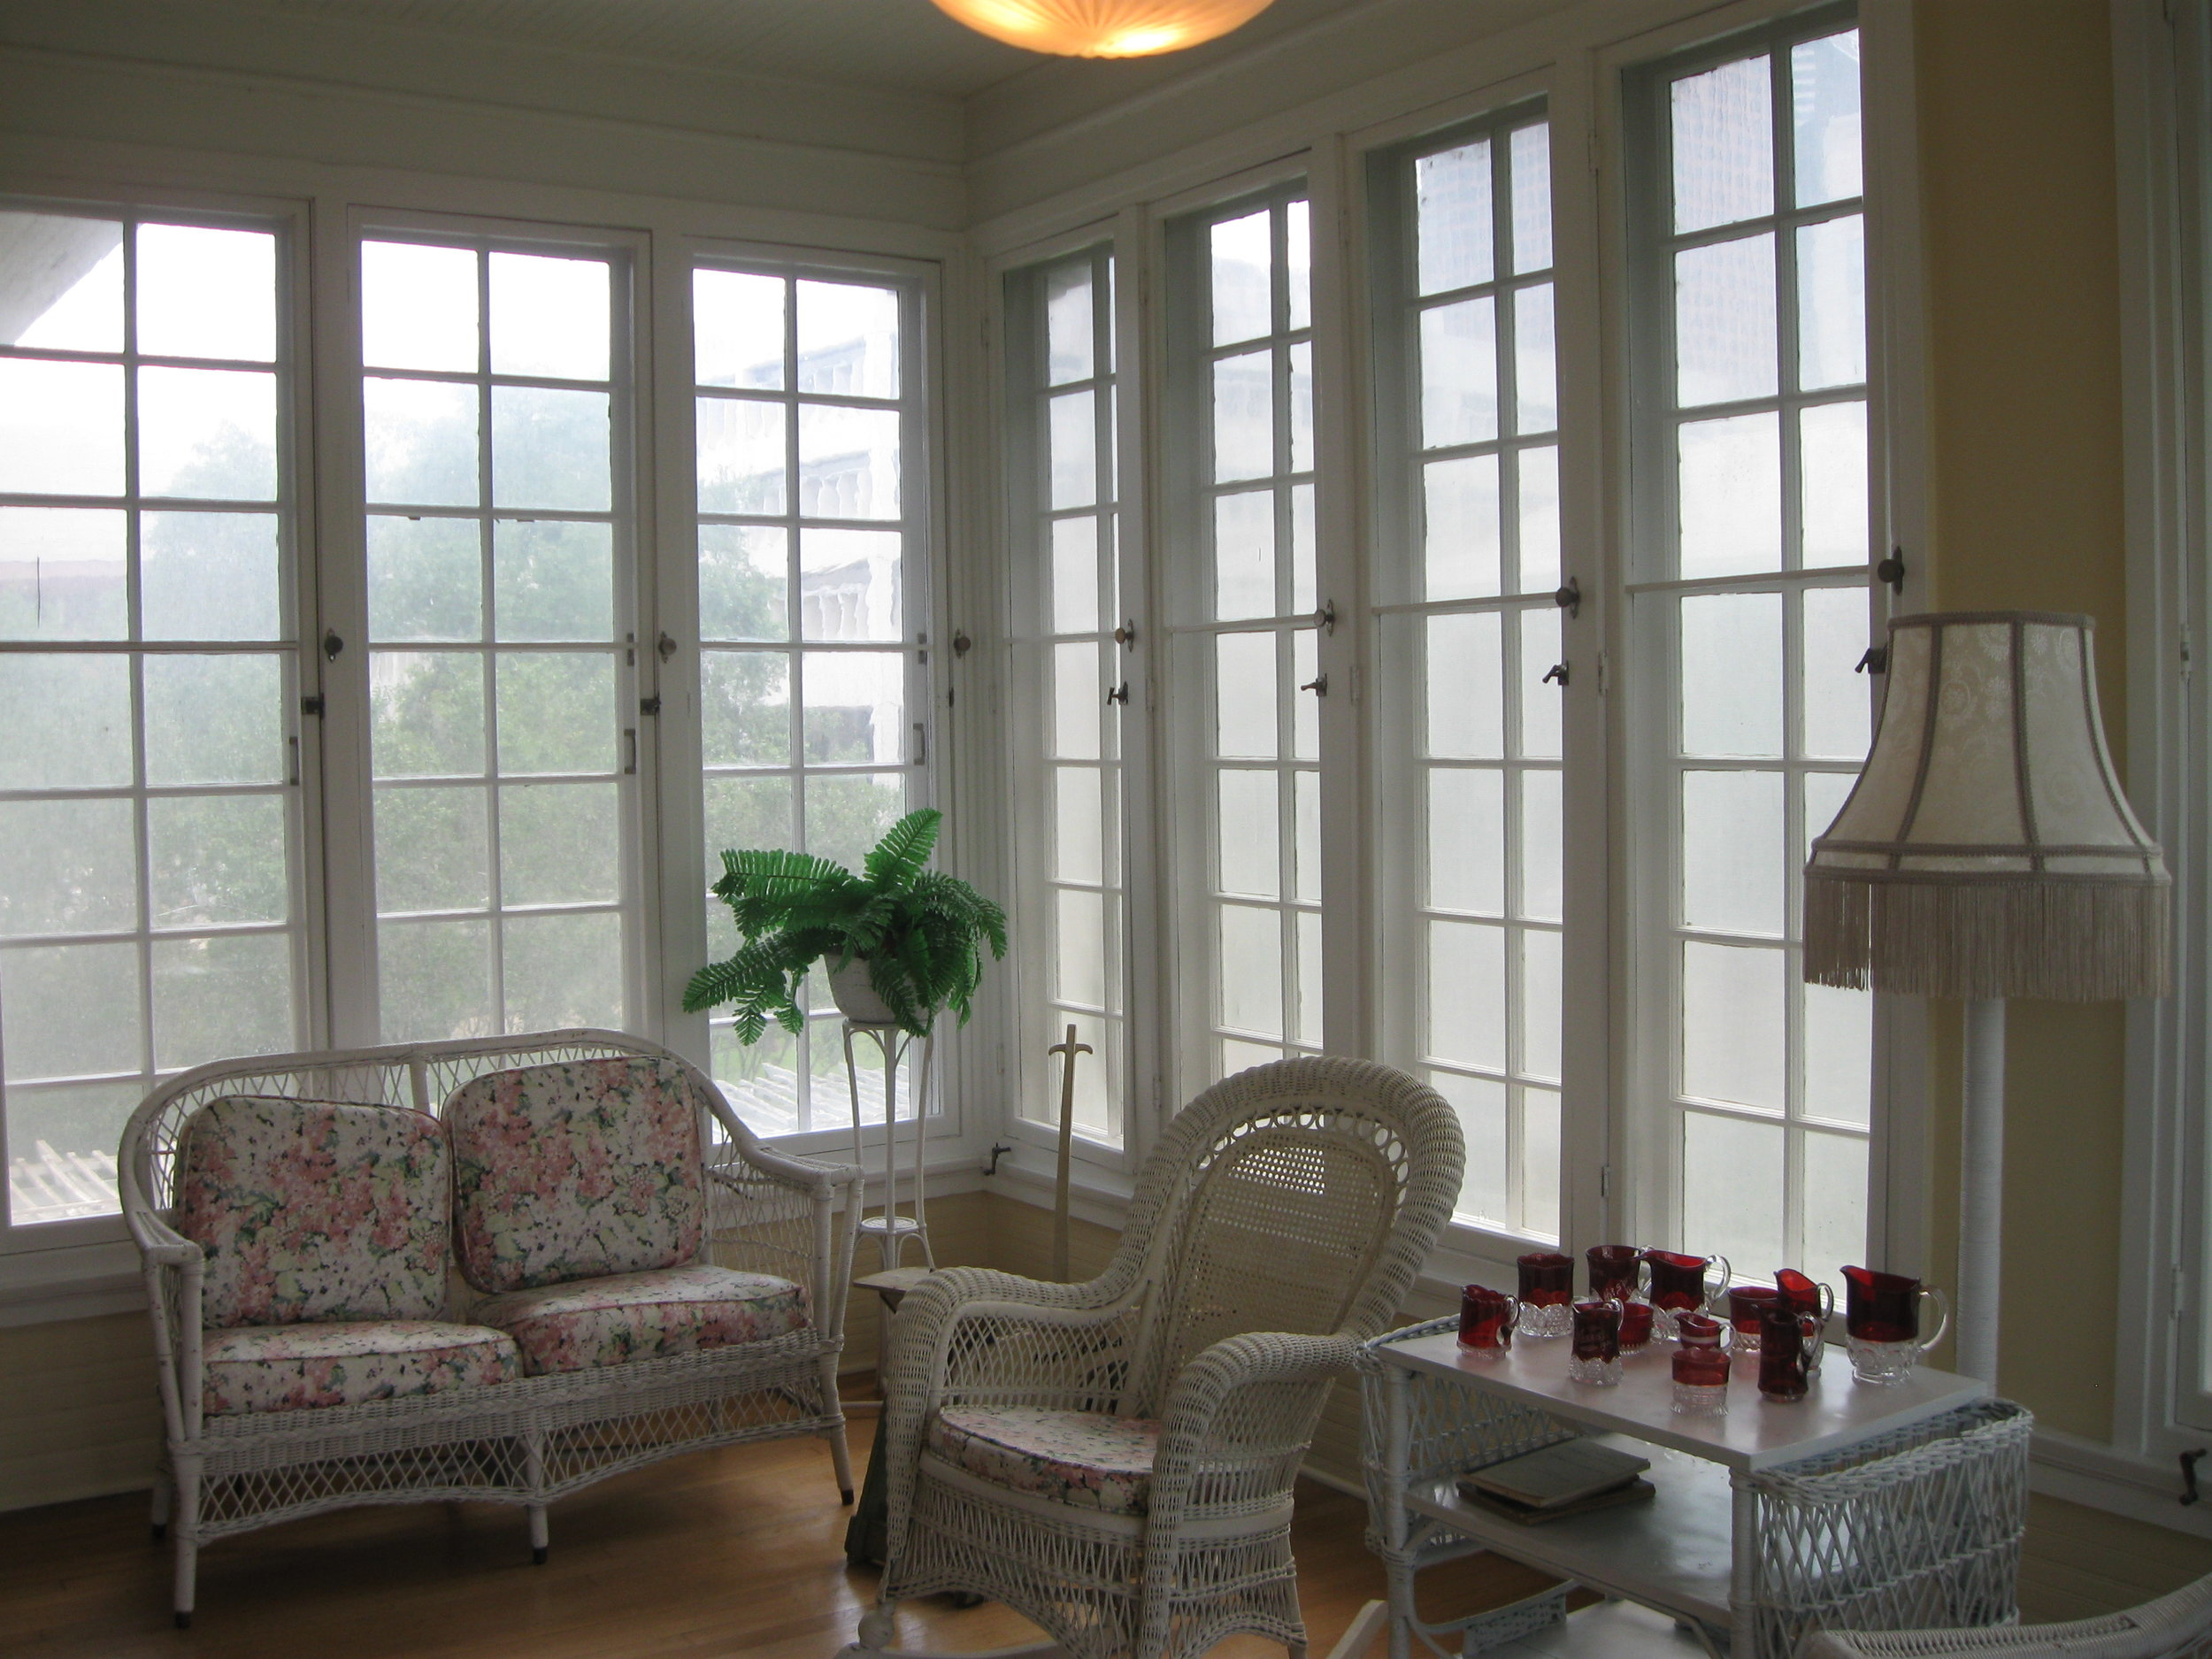 Sun room at the Staiti House. Windows were opened to allow breezes to pass through.